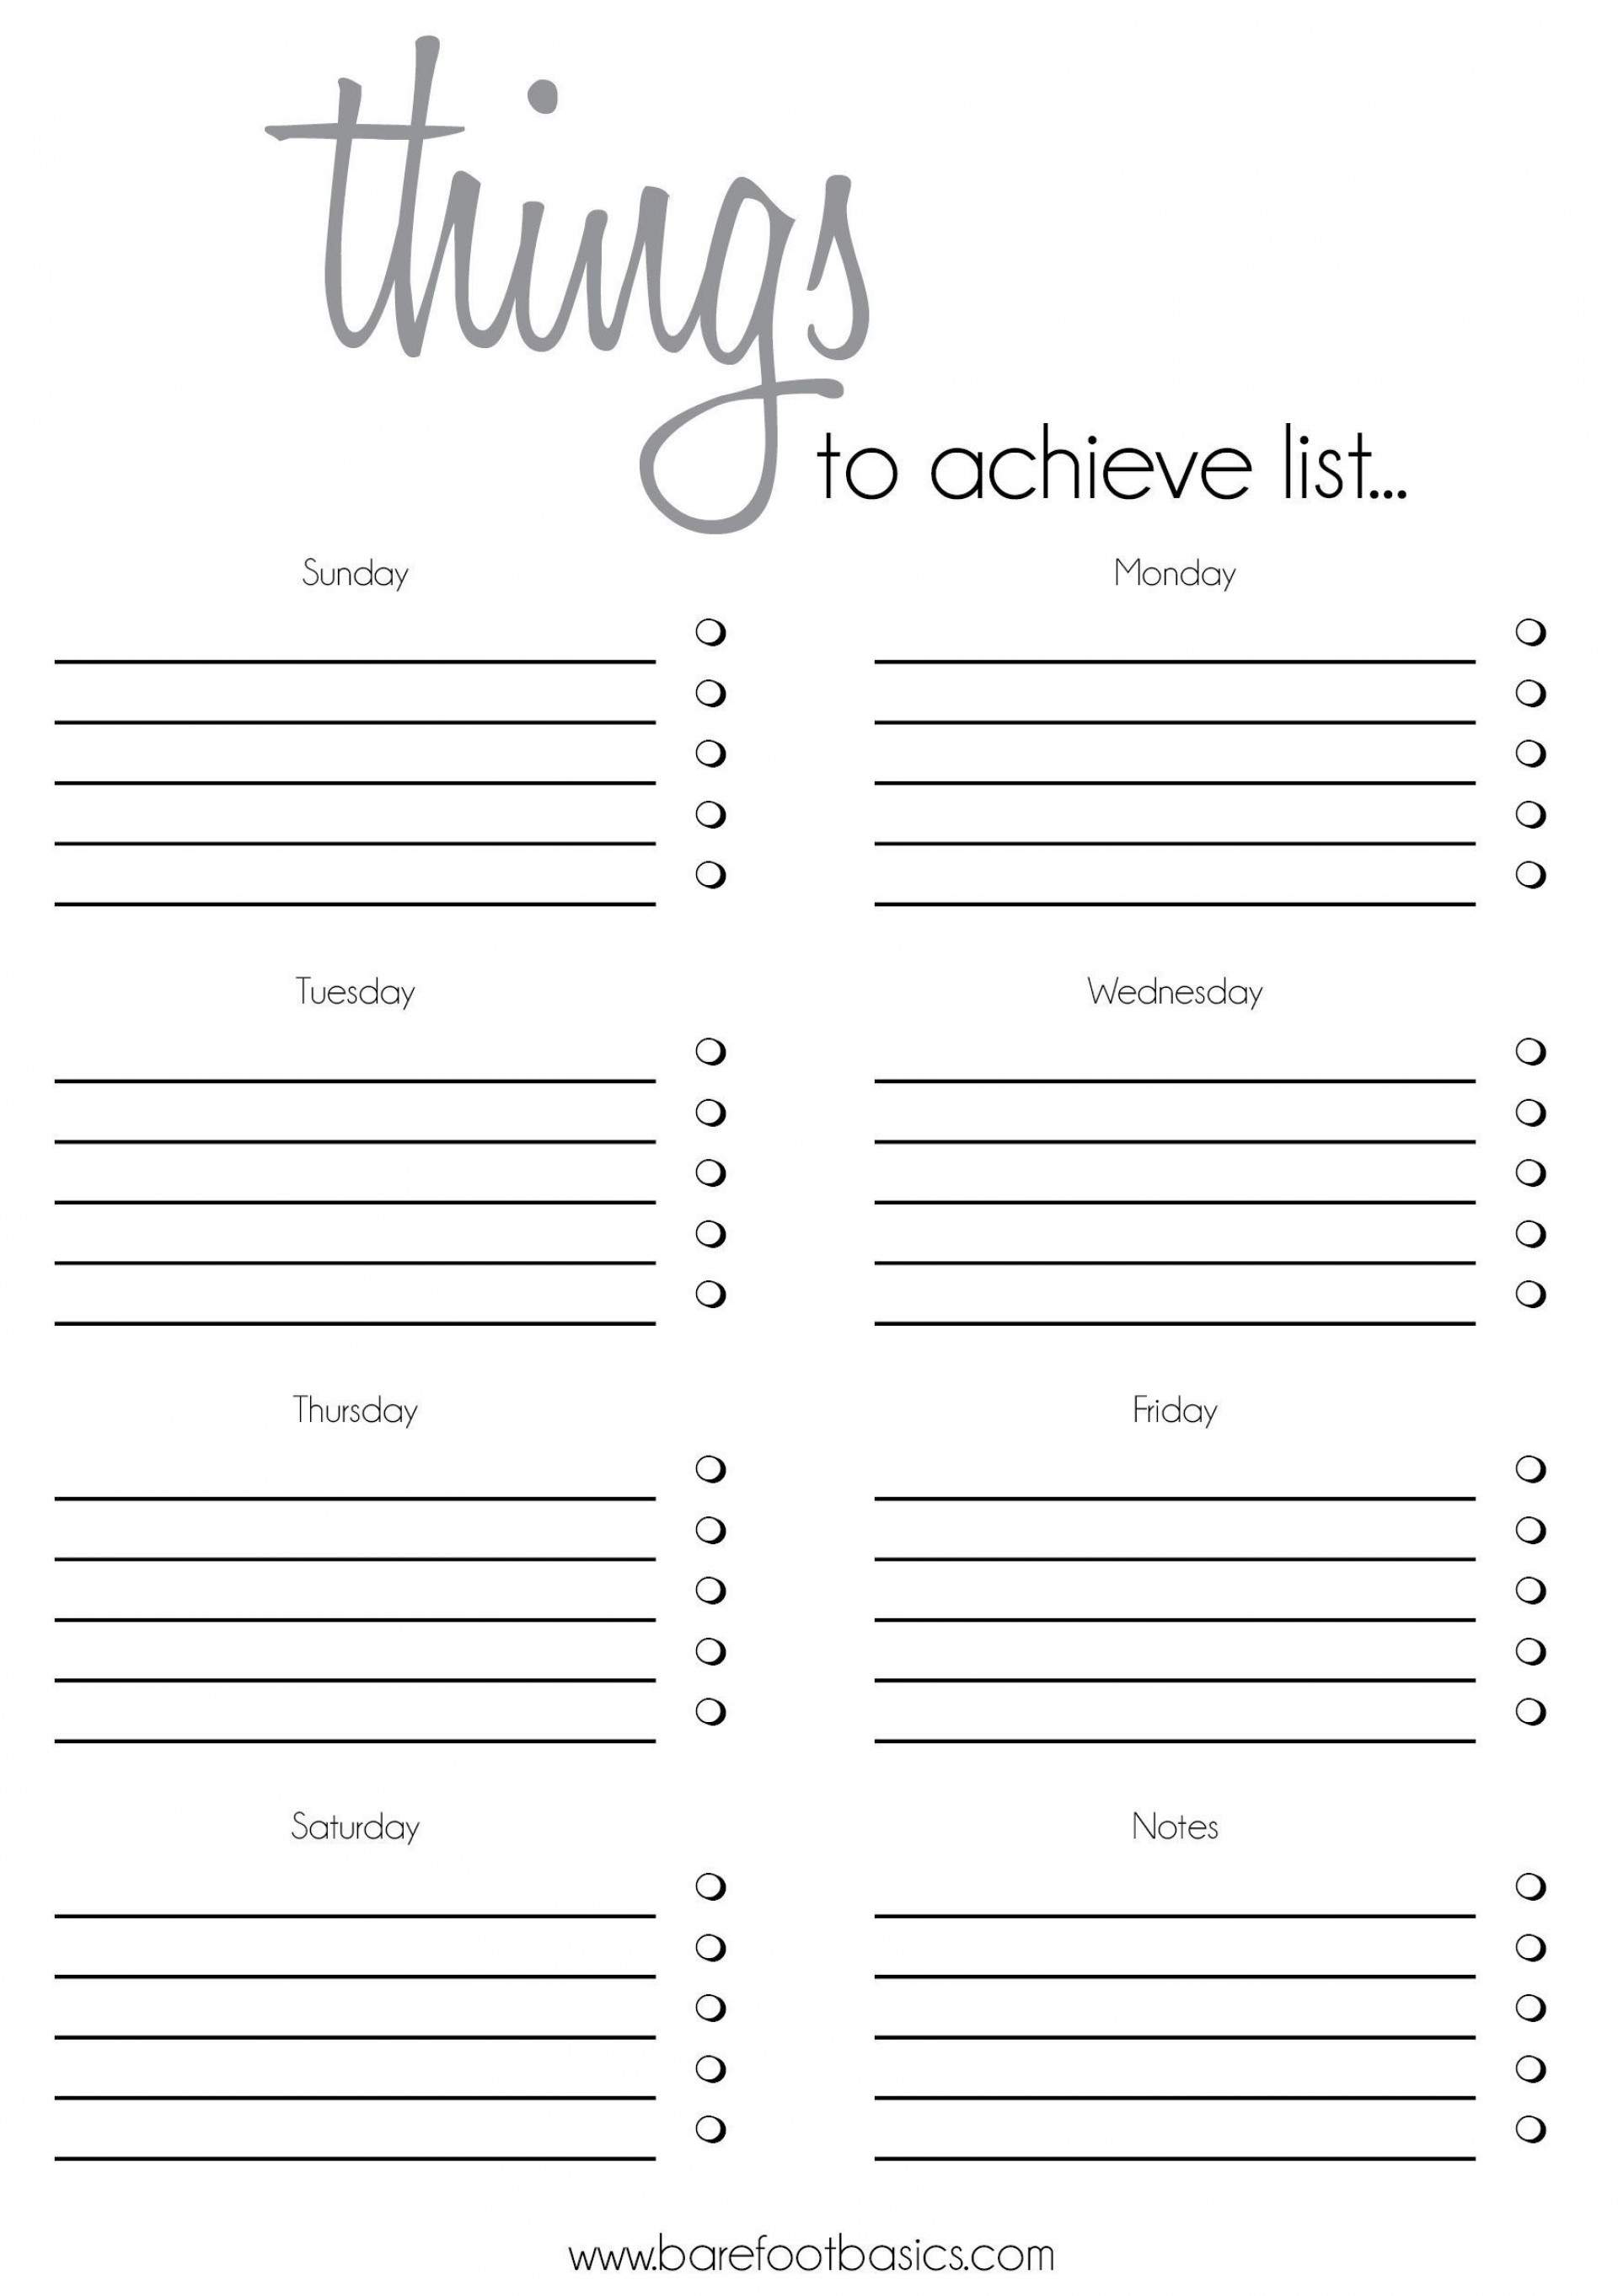 001 Archaicawful To Do List Template Design  Templates Microsoft Excel Printable Free1920